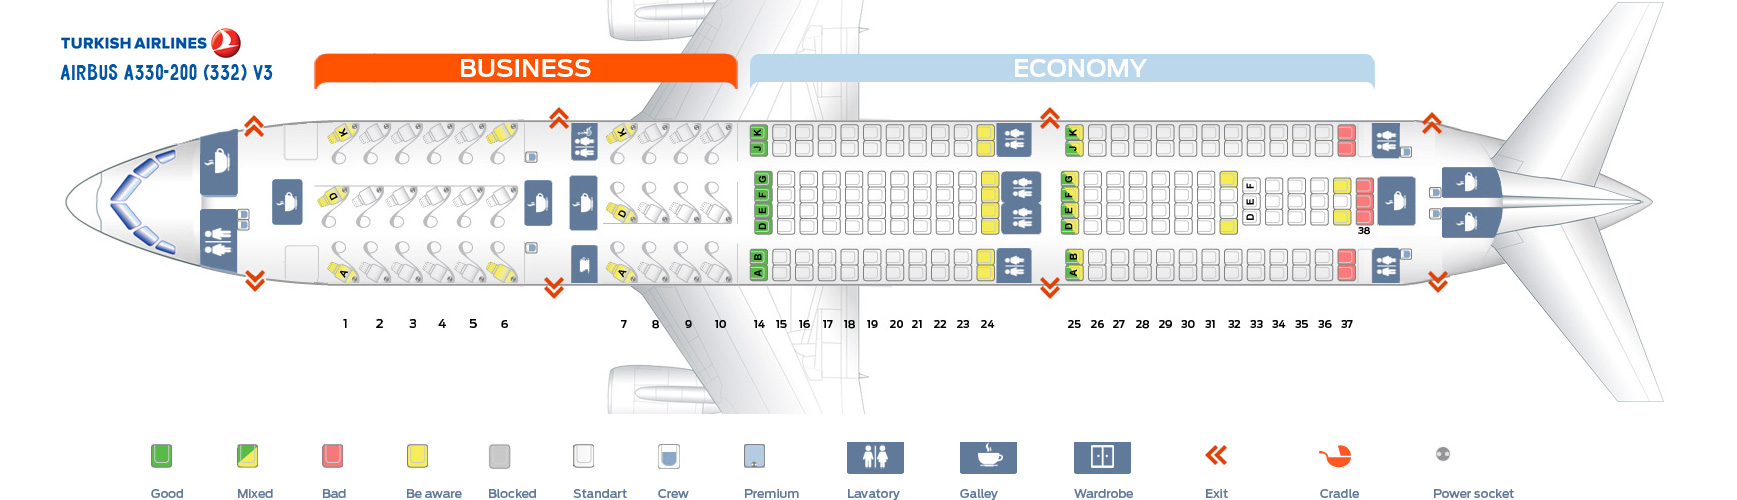 Airbus A330 200 Seating American Airlines Elcho Table